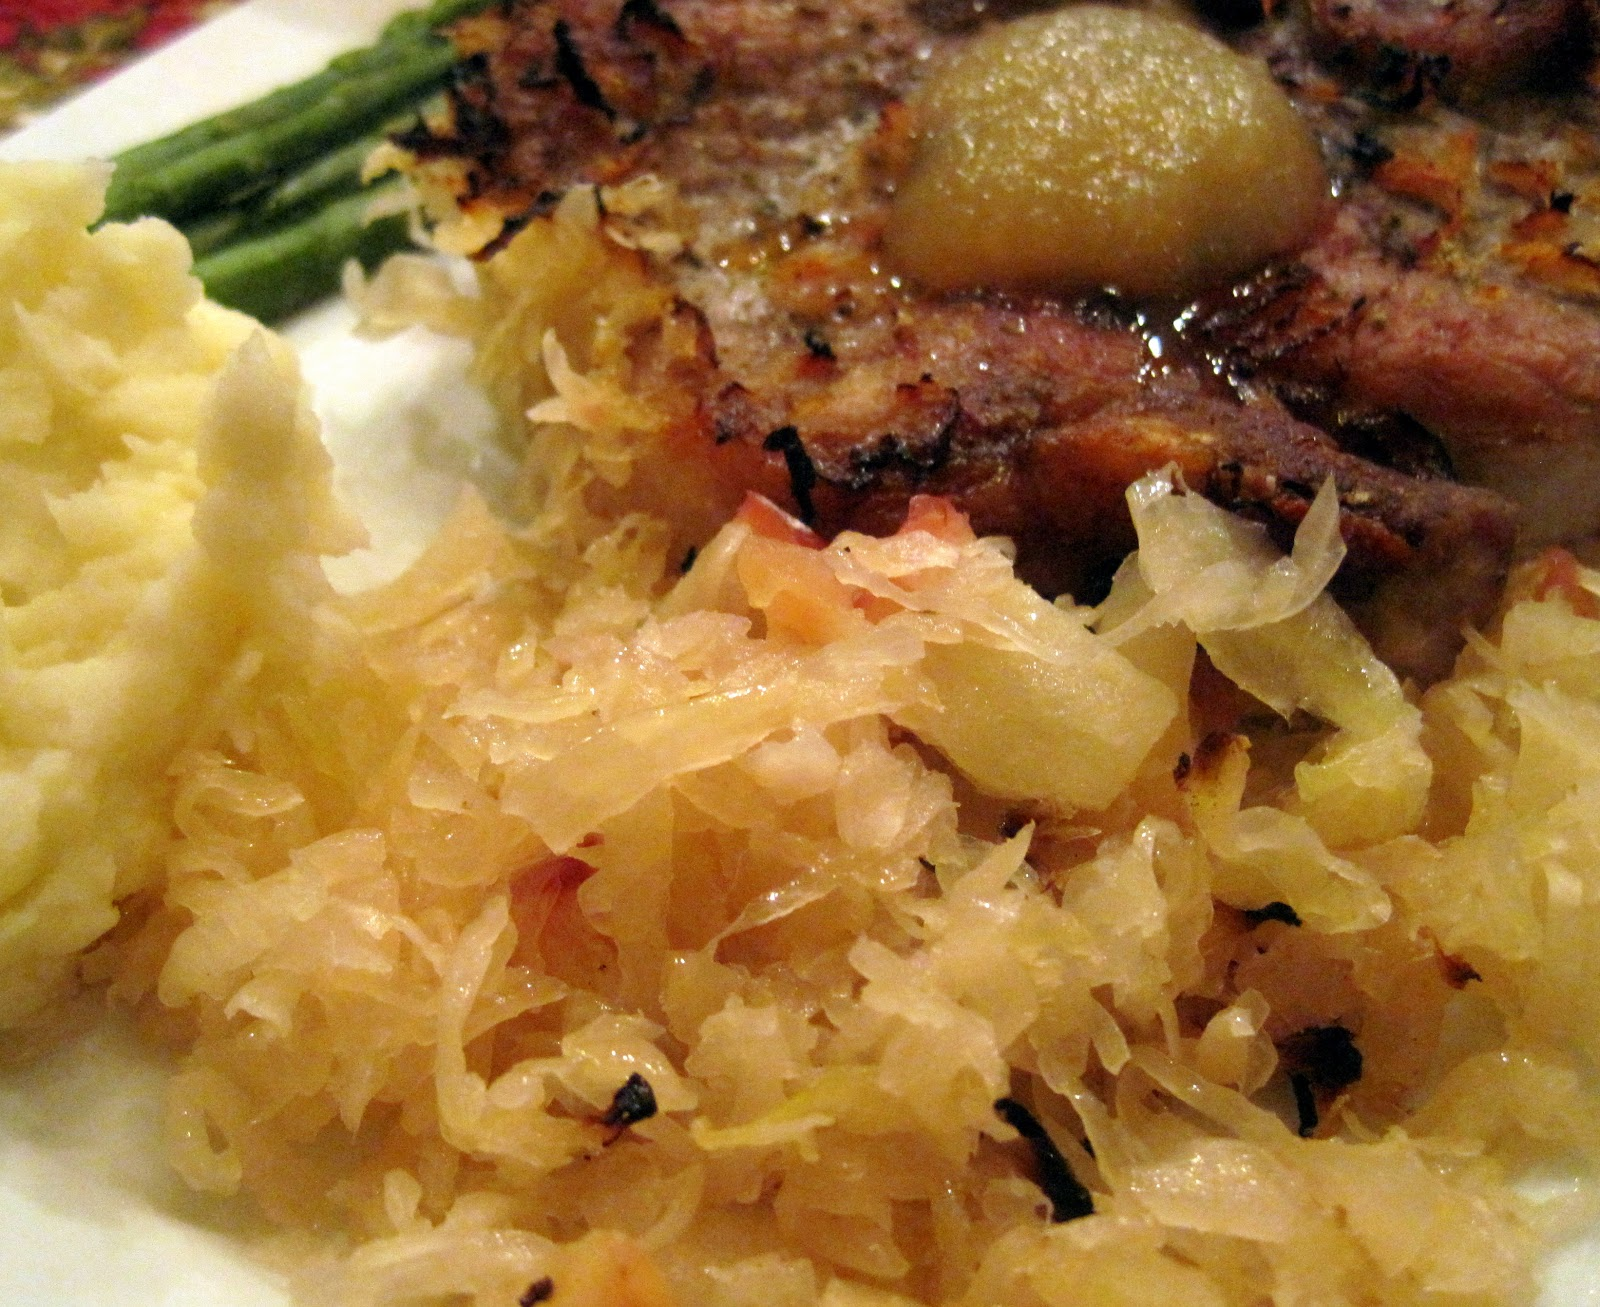 Oven Baked Pork Chops and Sauerkraut